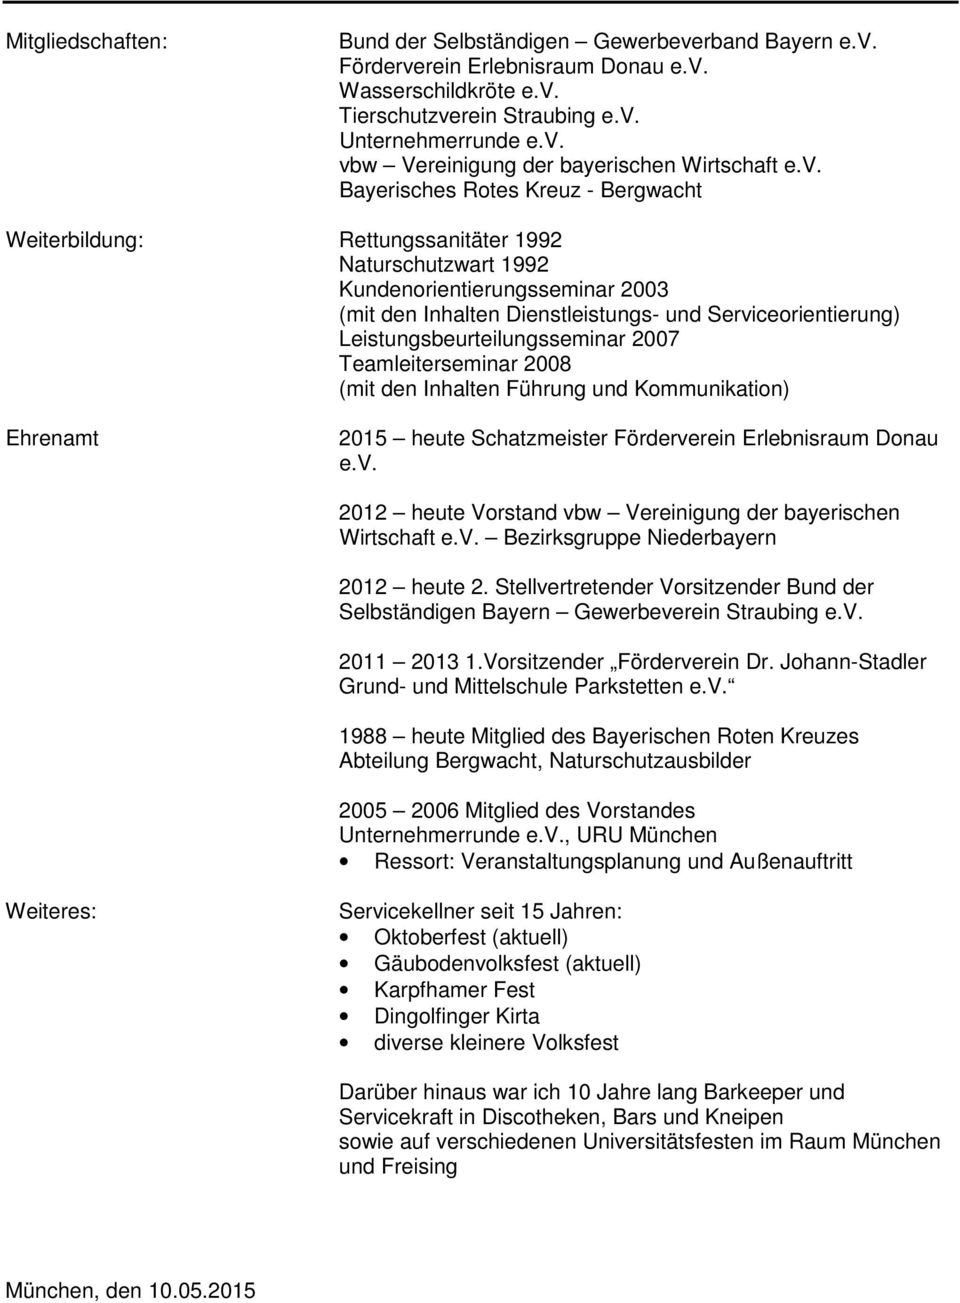 Tolle Barkeeper Lebenslauf Ideen - Entry Level Resume Vorlagen ...